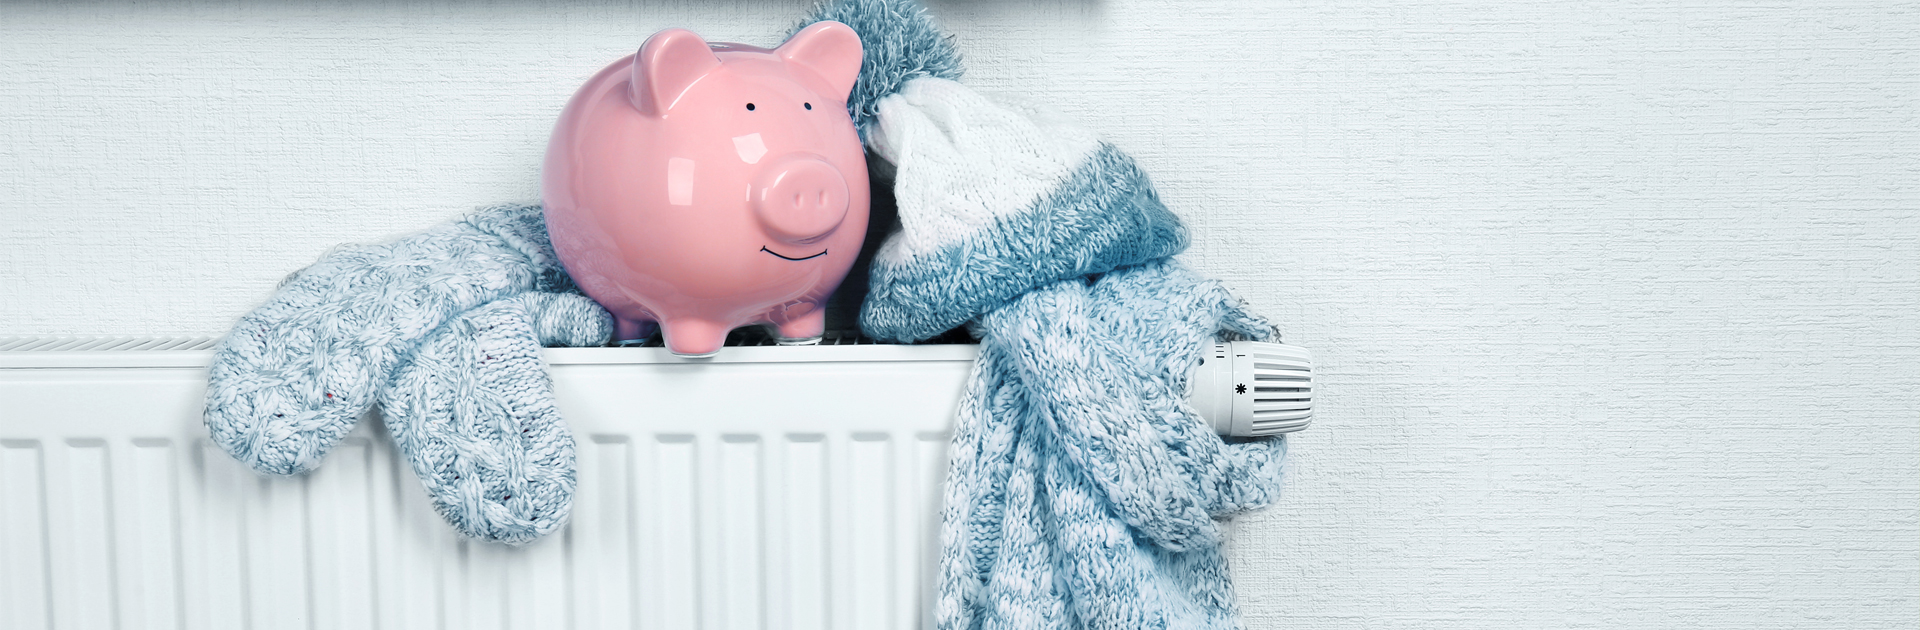 Better Homes Yorkshire - Insulation, Heating, Renewables